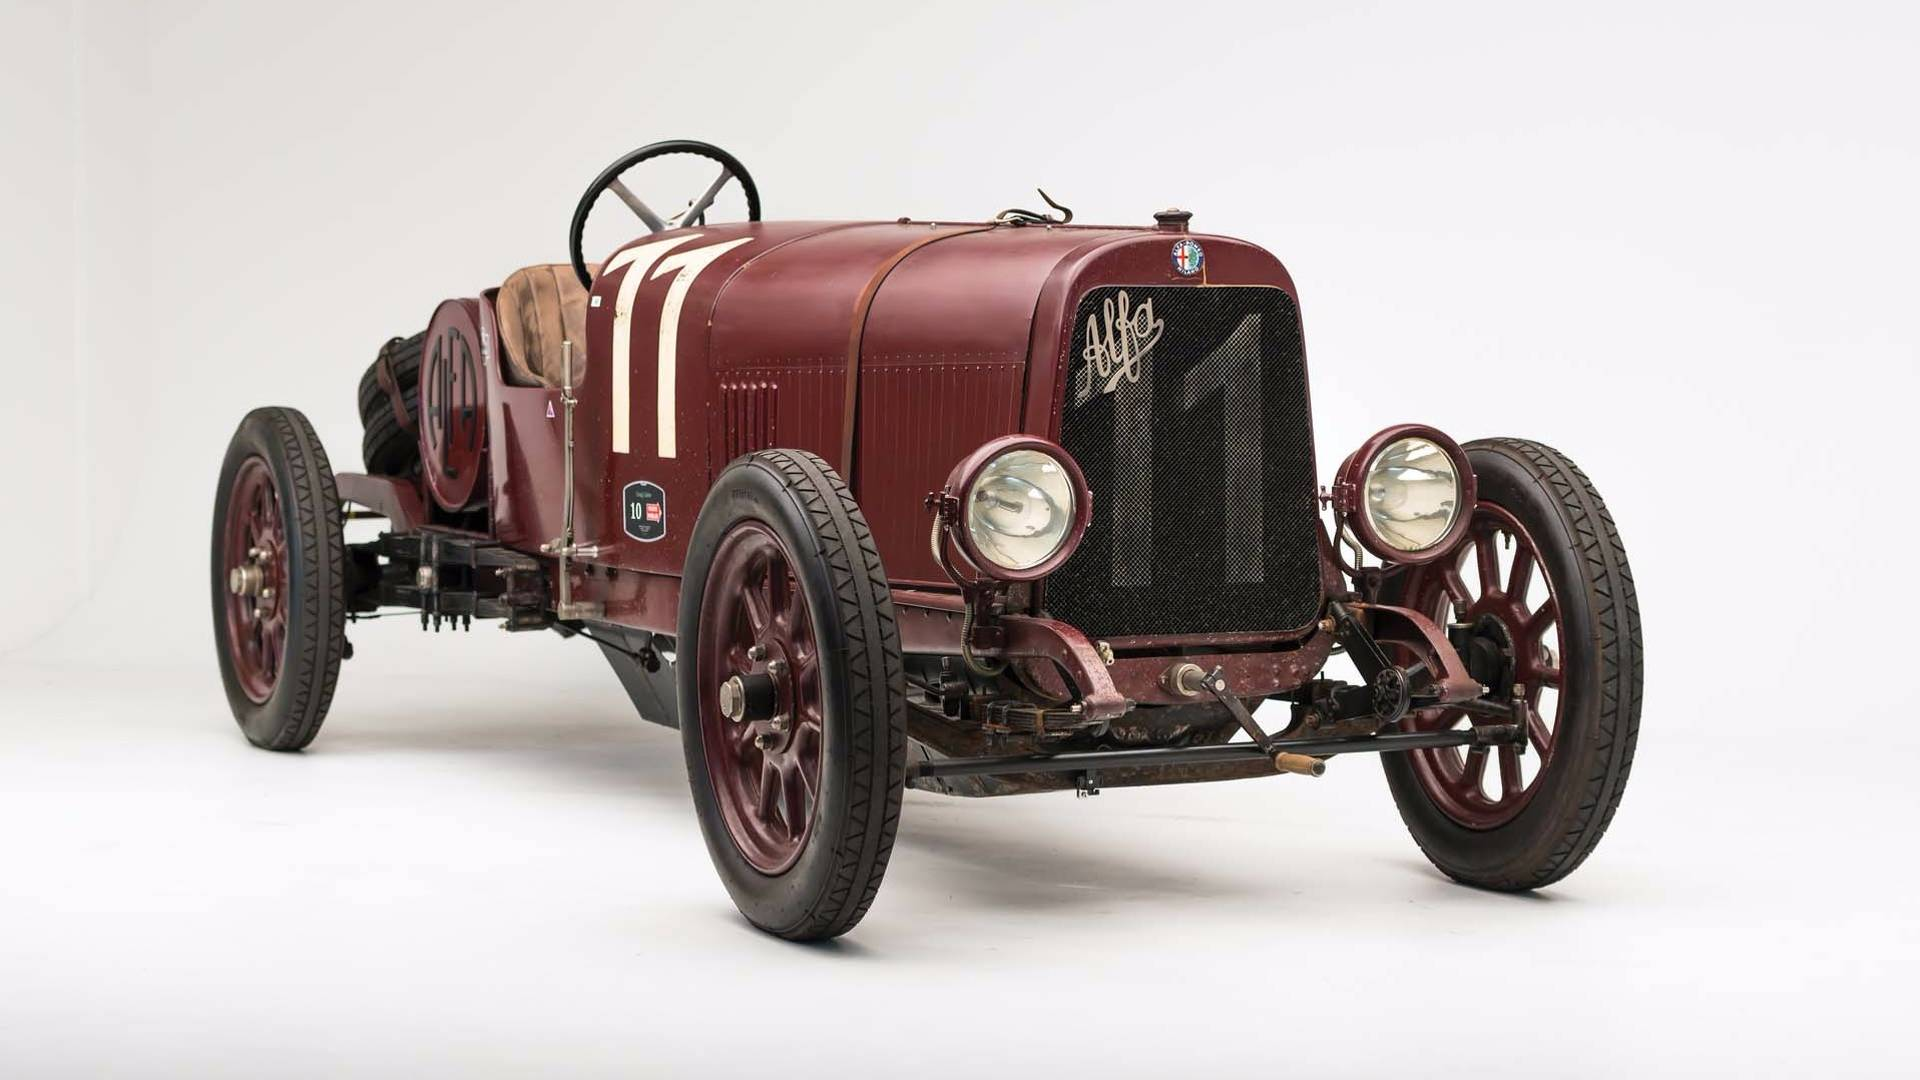 Alfa Romeo G1 1921 in auction (6)